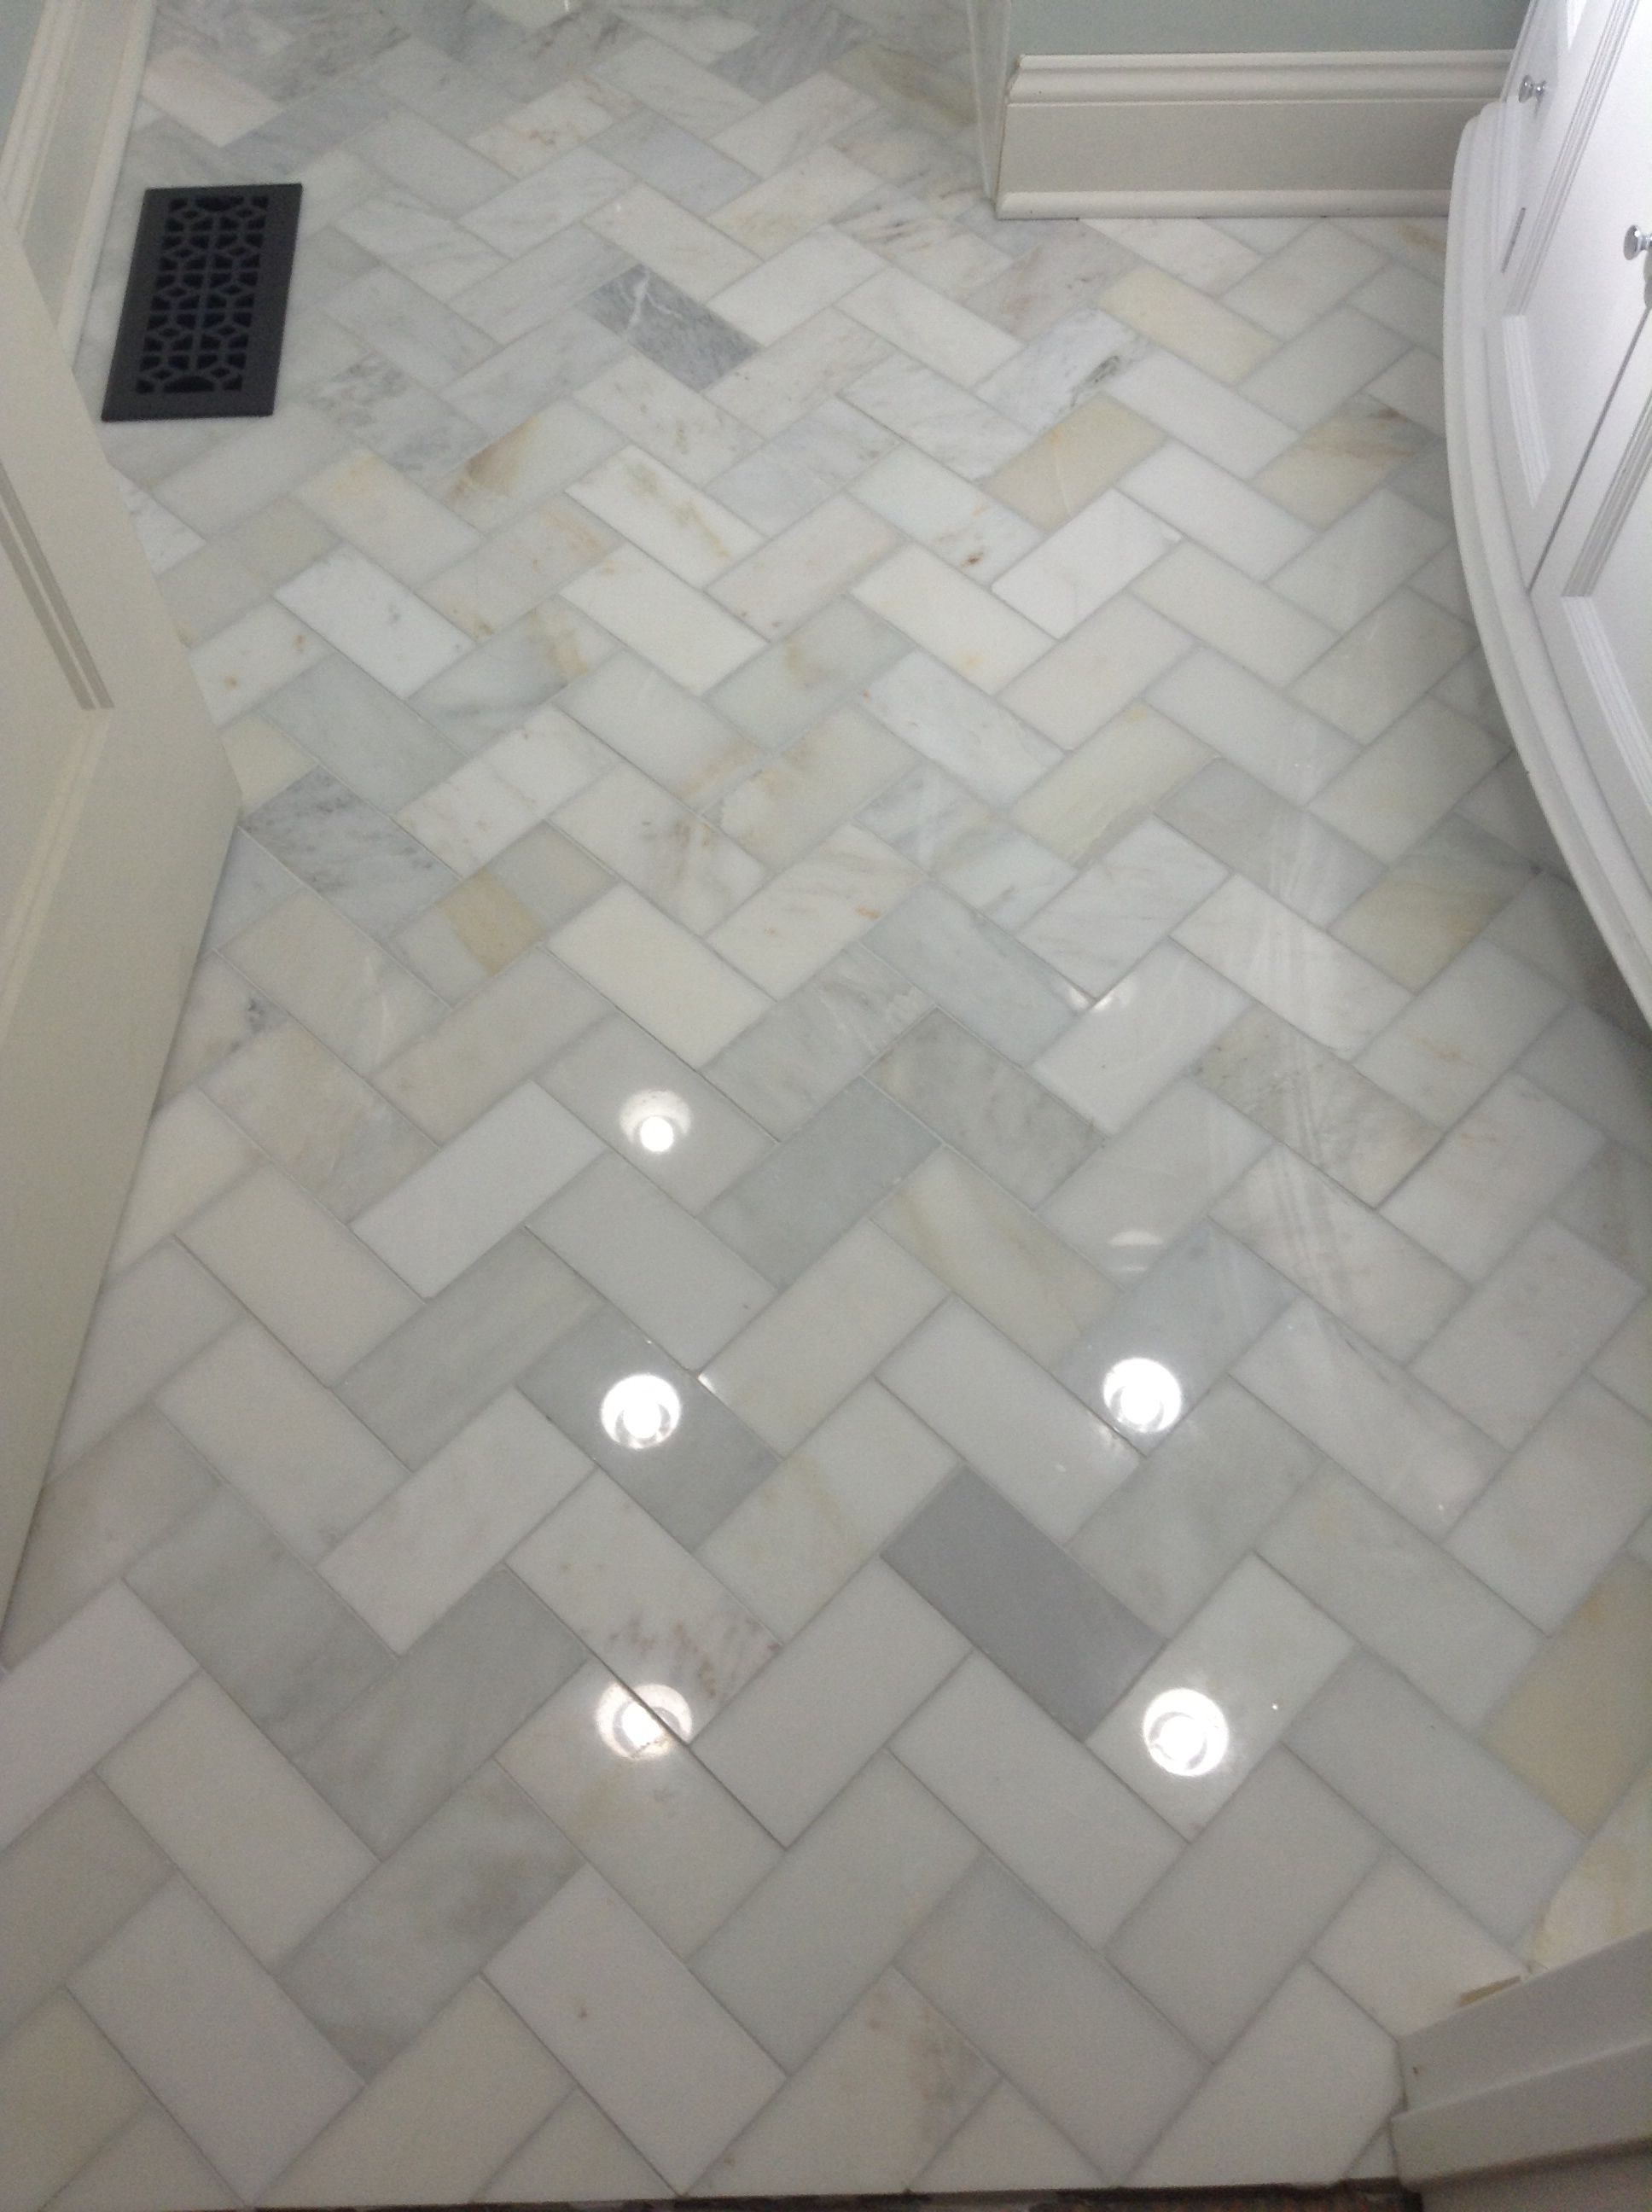 Herringbone Marble Floor Marble Bathroom Floor Bathroom Flooring Herringbone Tile Floors